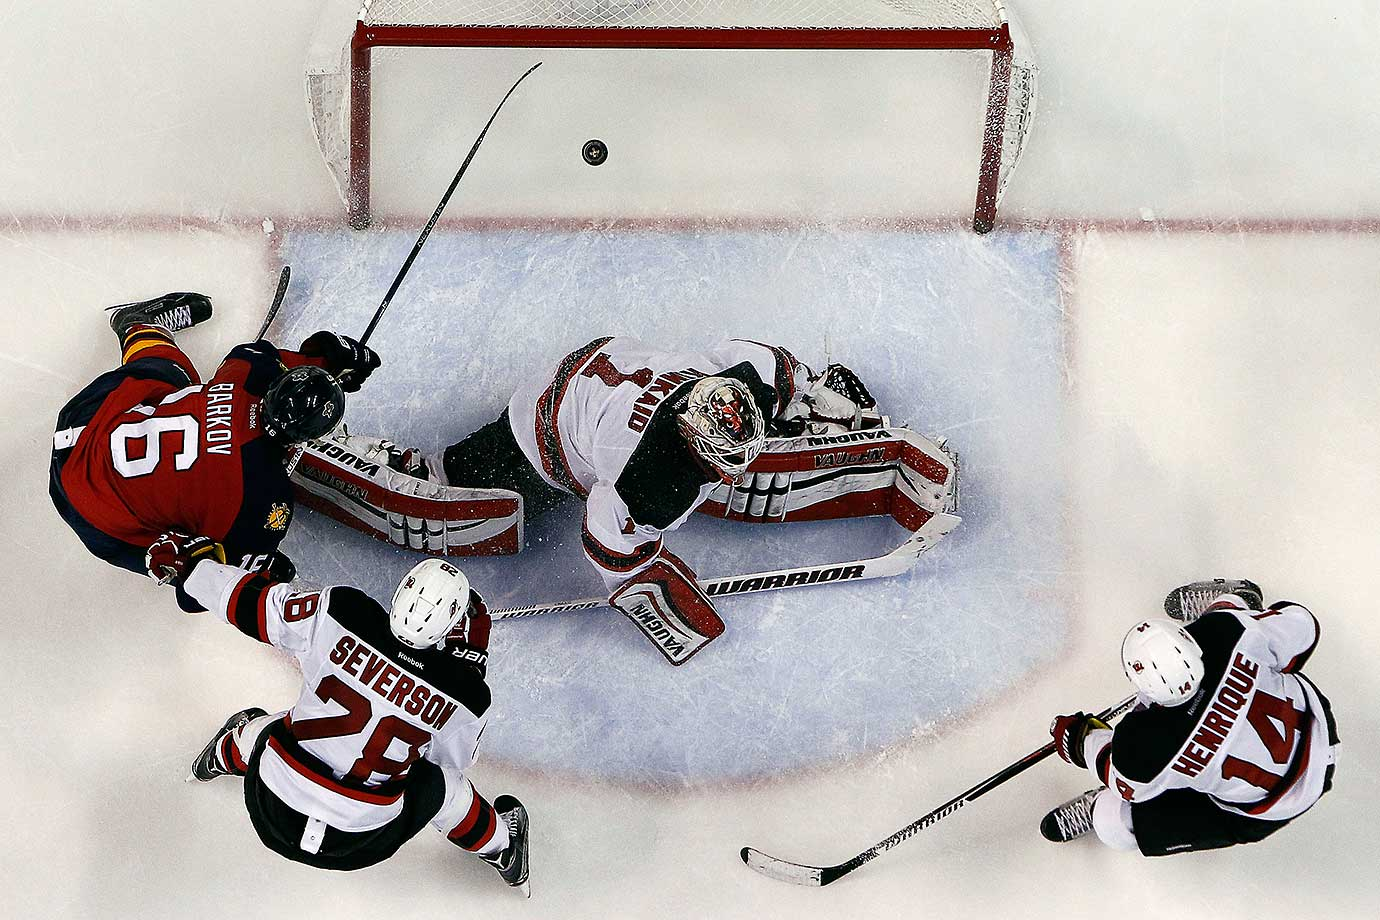 Aleksander Barkov of the Florida Panthers scores against Goaltender Keith Kinkaid of the New Jersey Devils.